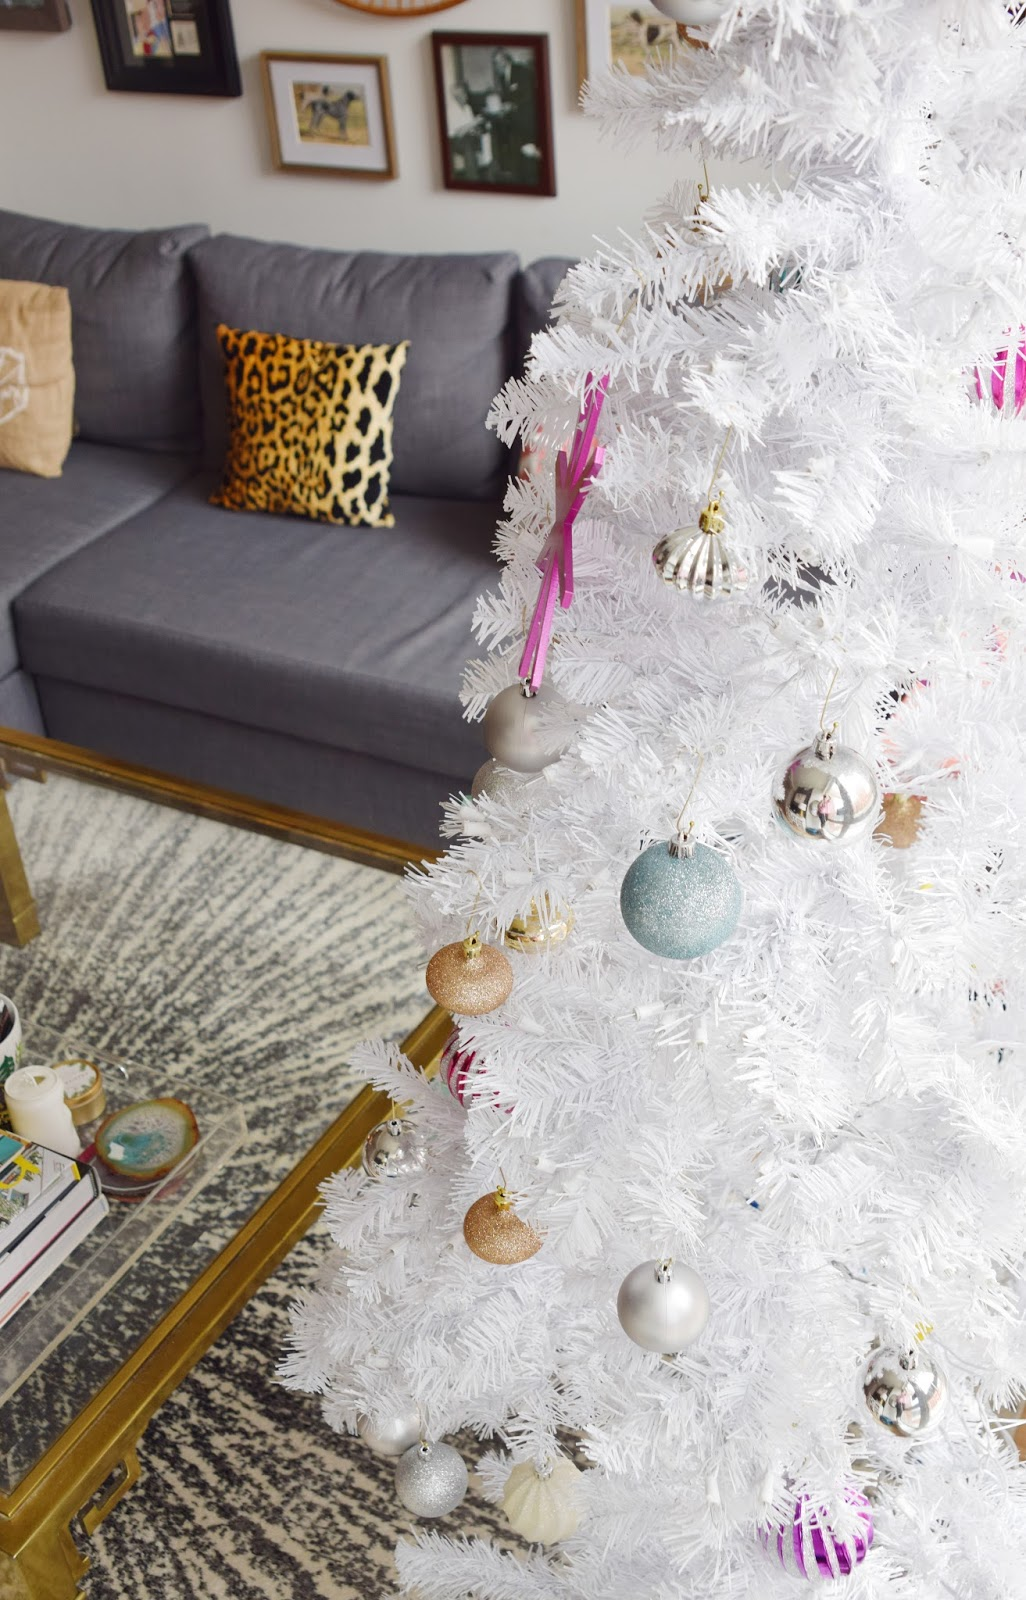 How We Decorate for the Holidays in 600 Square Feet